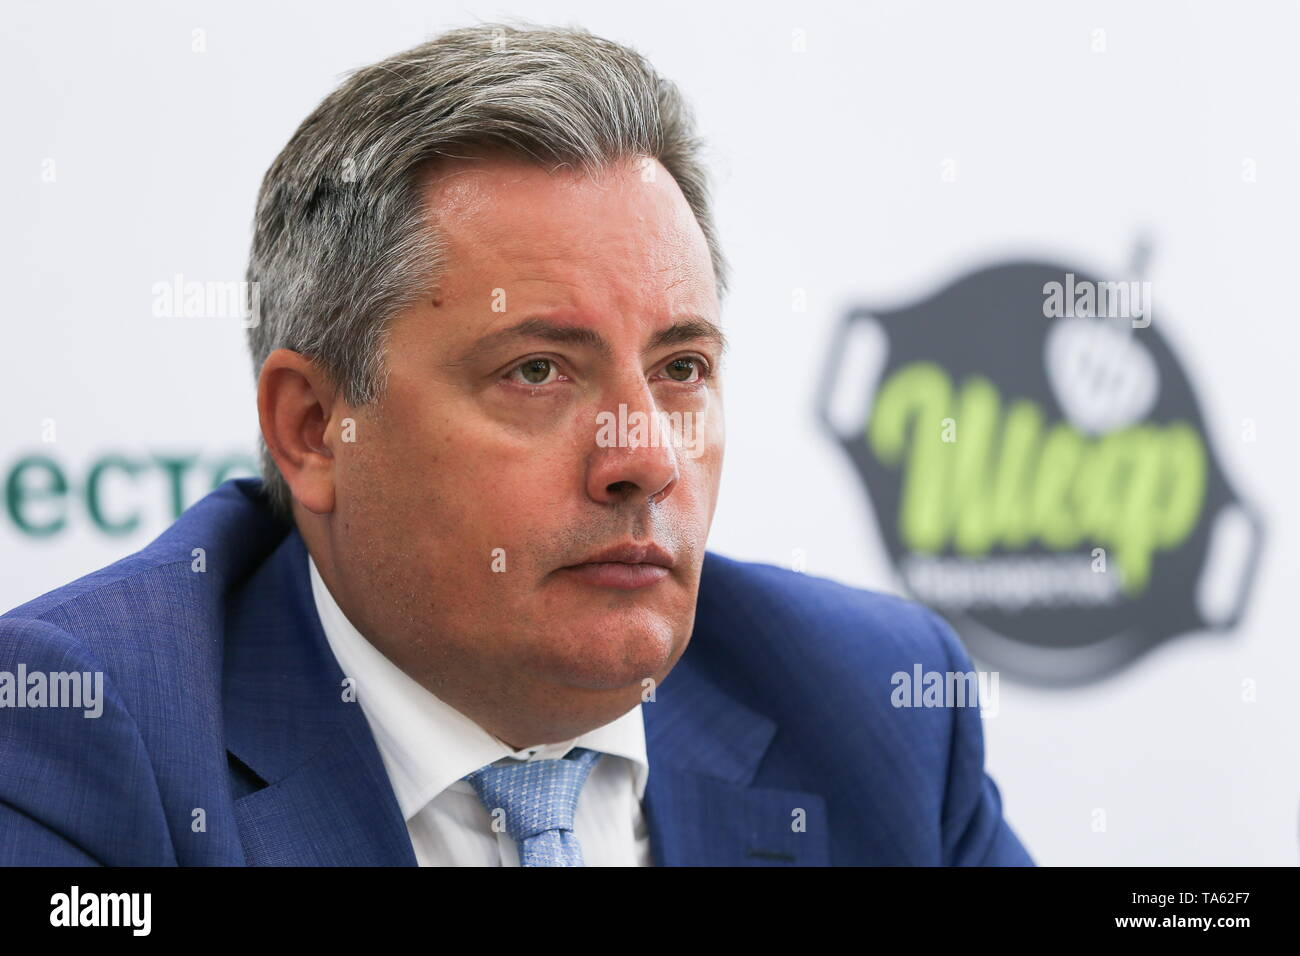 Russia. 22nd May, 2019. MOSCOW REGION, RUSSIA - MAY 22, 2019: Perekrestok CEO Vladislav Kurbatov attends a press conference on the Smart Kitchen launched by the Perekrestok supermarket chain; measuring 26,000sqm in area, the kitchen produces more than 200 various articles of food under the brand name Chef Perekrestok to supply to the Perekrestok supermarkets, Gavriil Grigorov/TASS Credit: ITAR-TASS News Agency/Alamy Live News - Stock Image